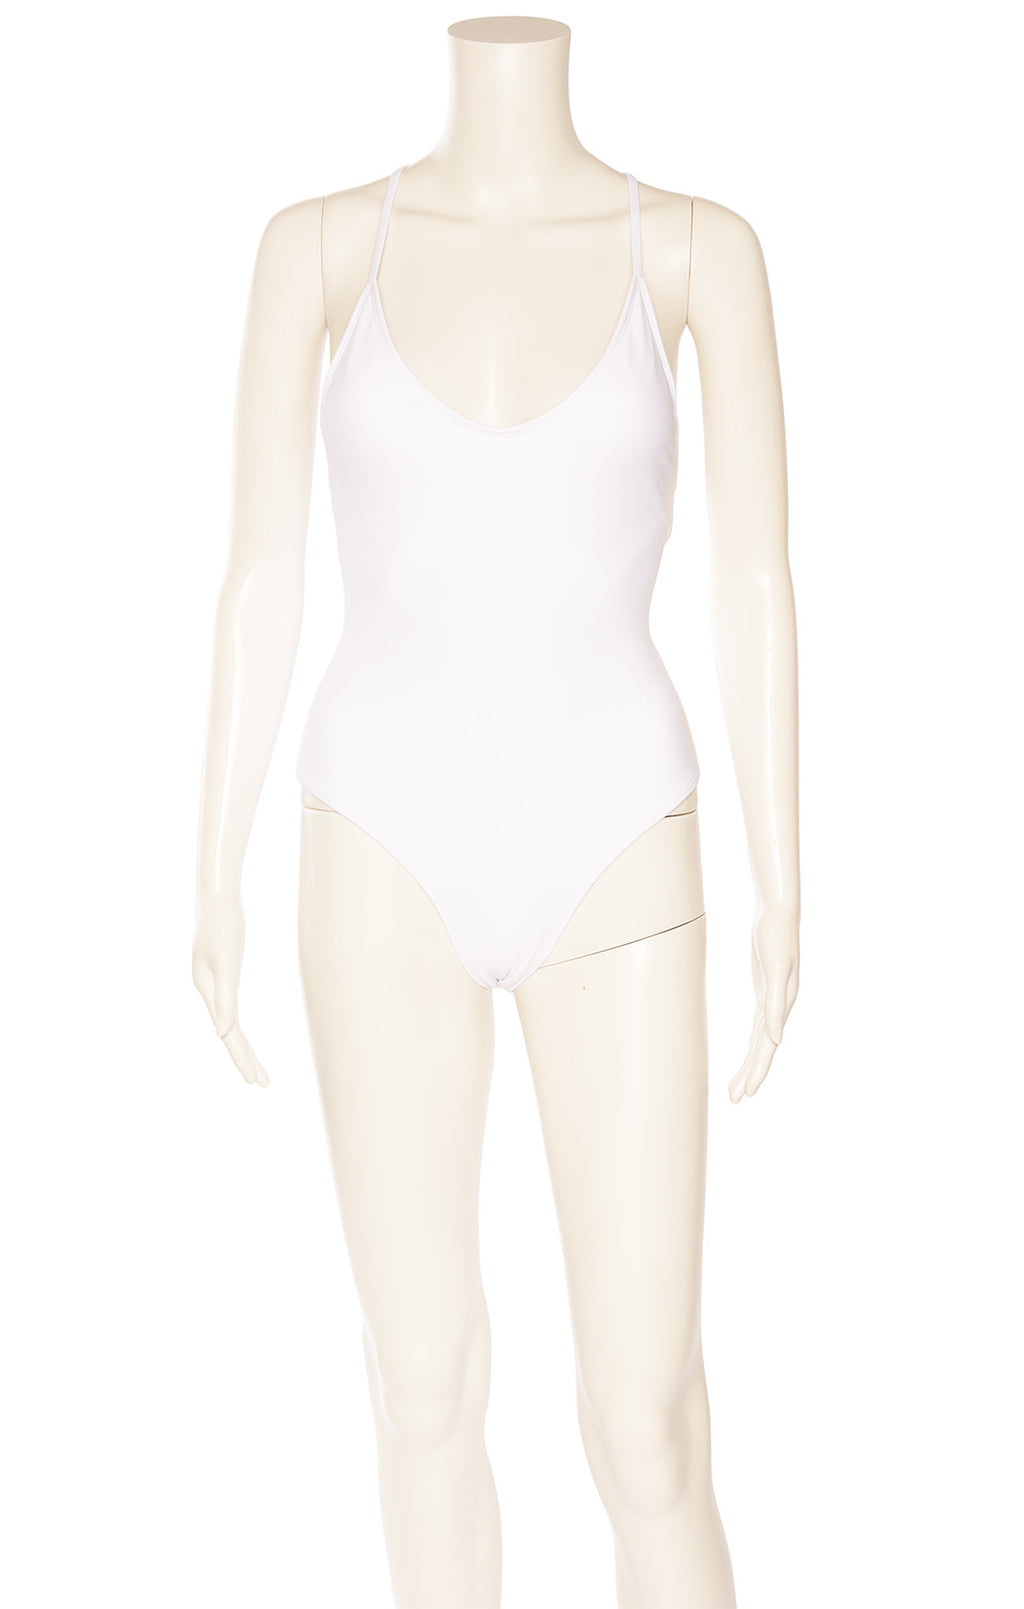 White one piece bathing suit with padded bra and back lacing